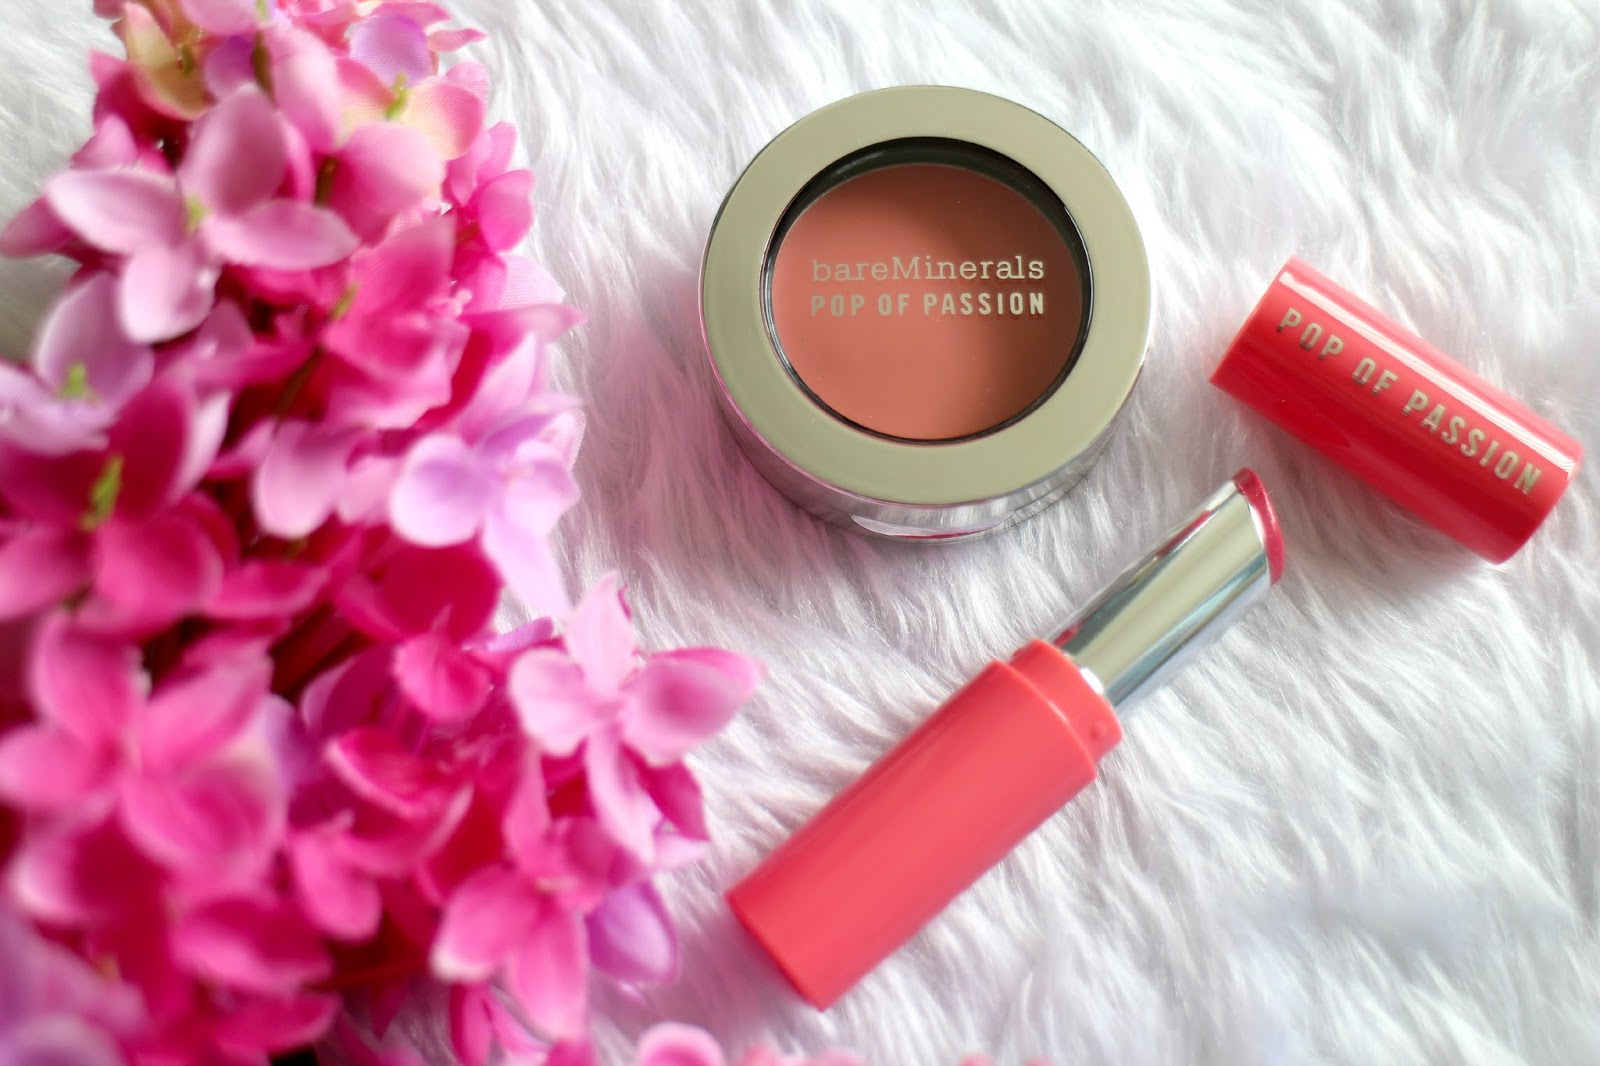 bare Minerals Pop Of Passion Review